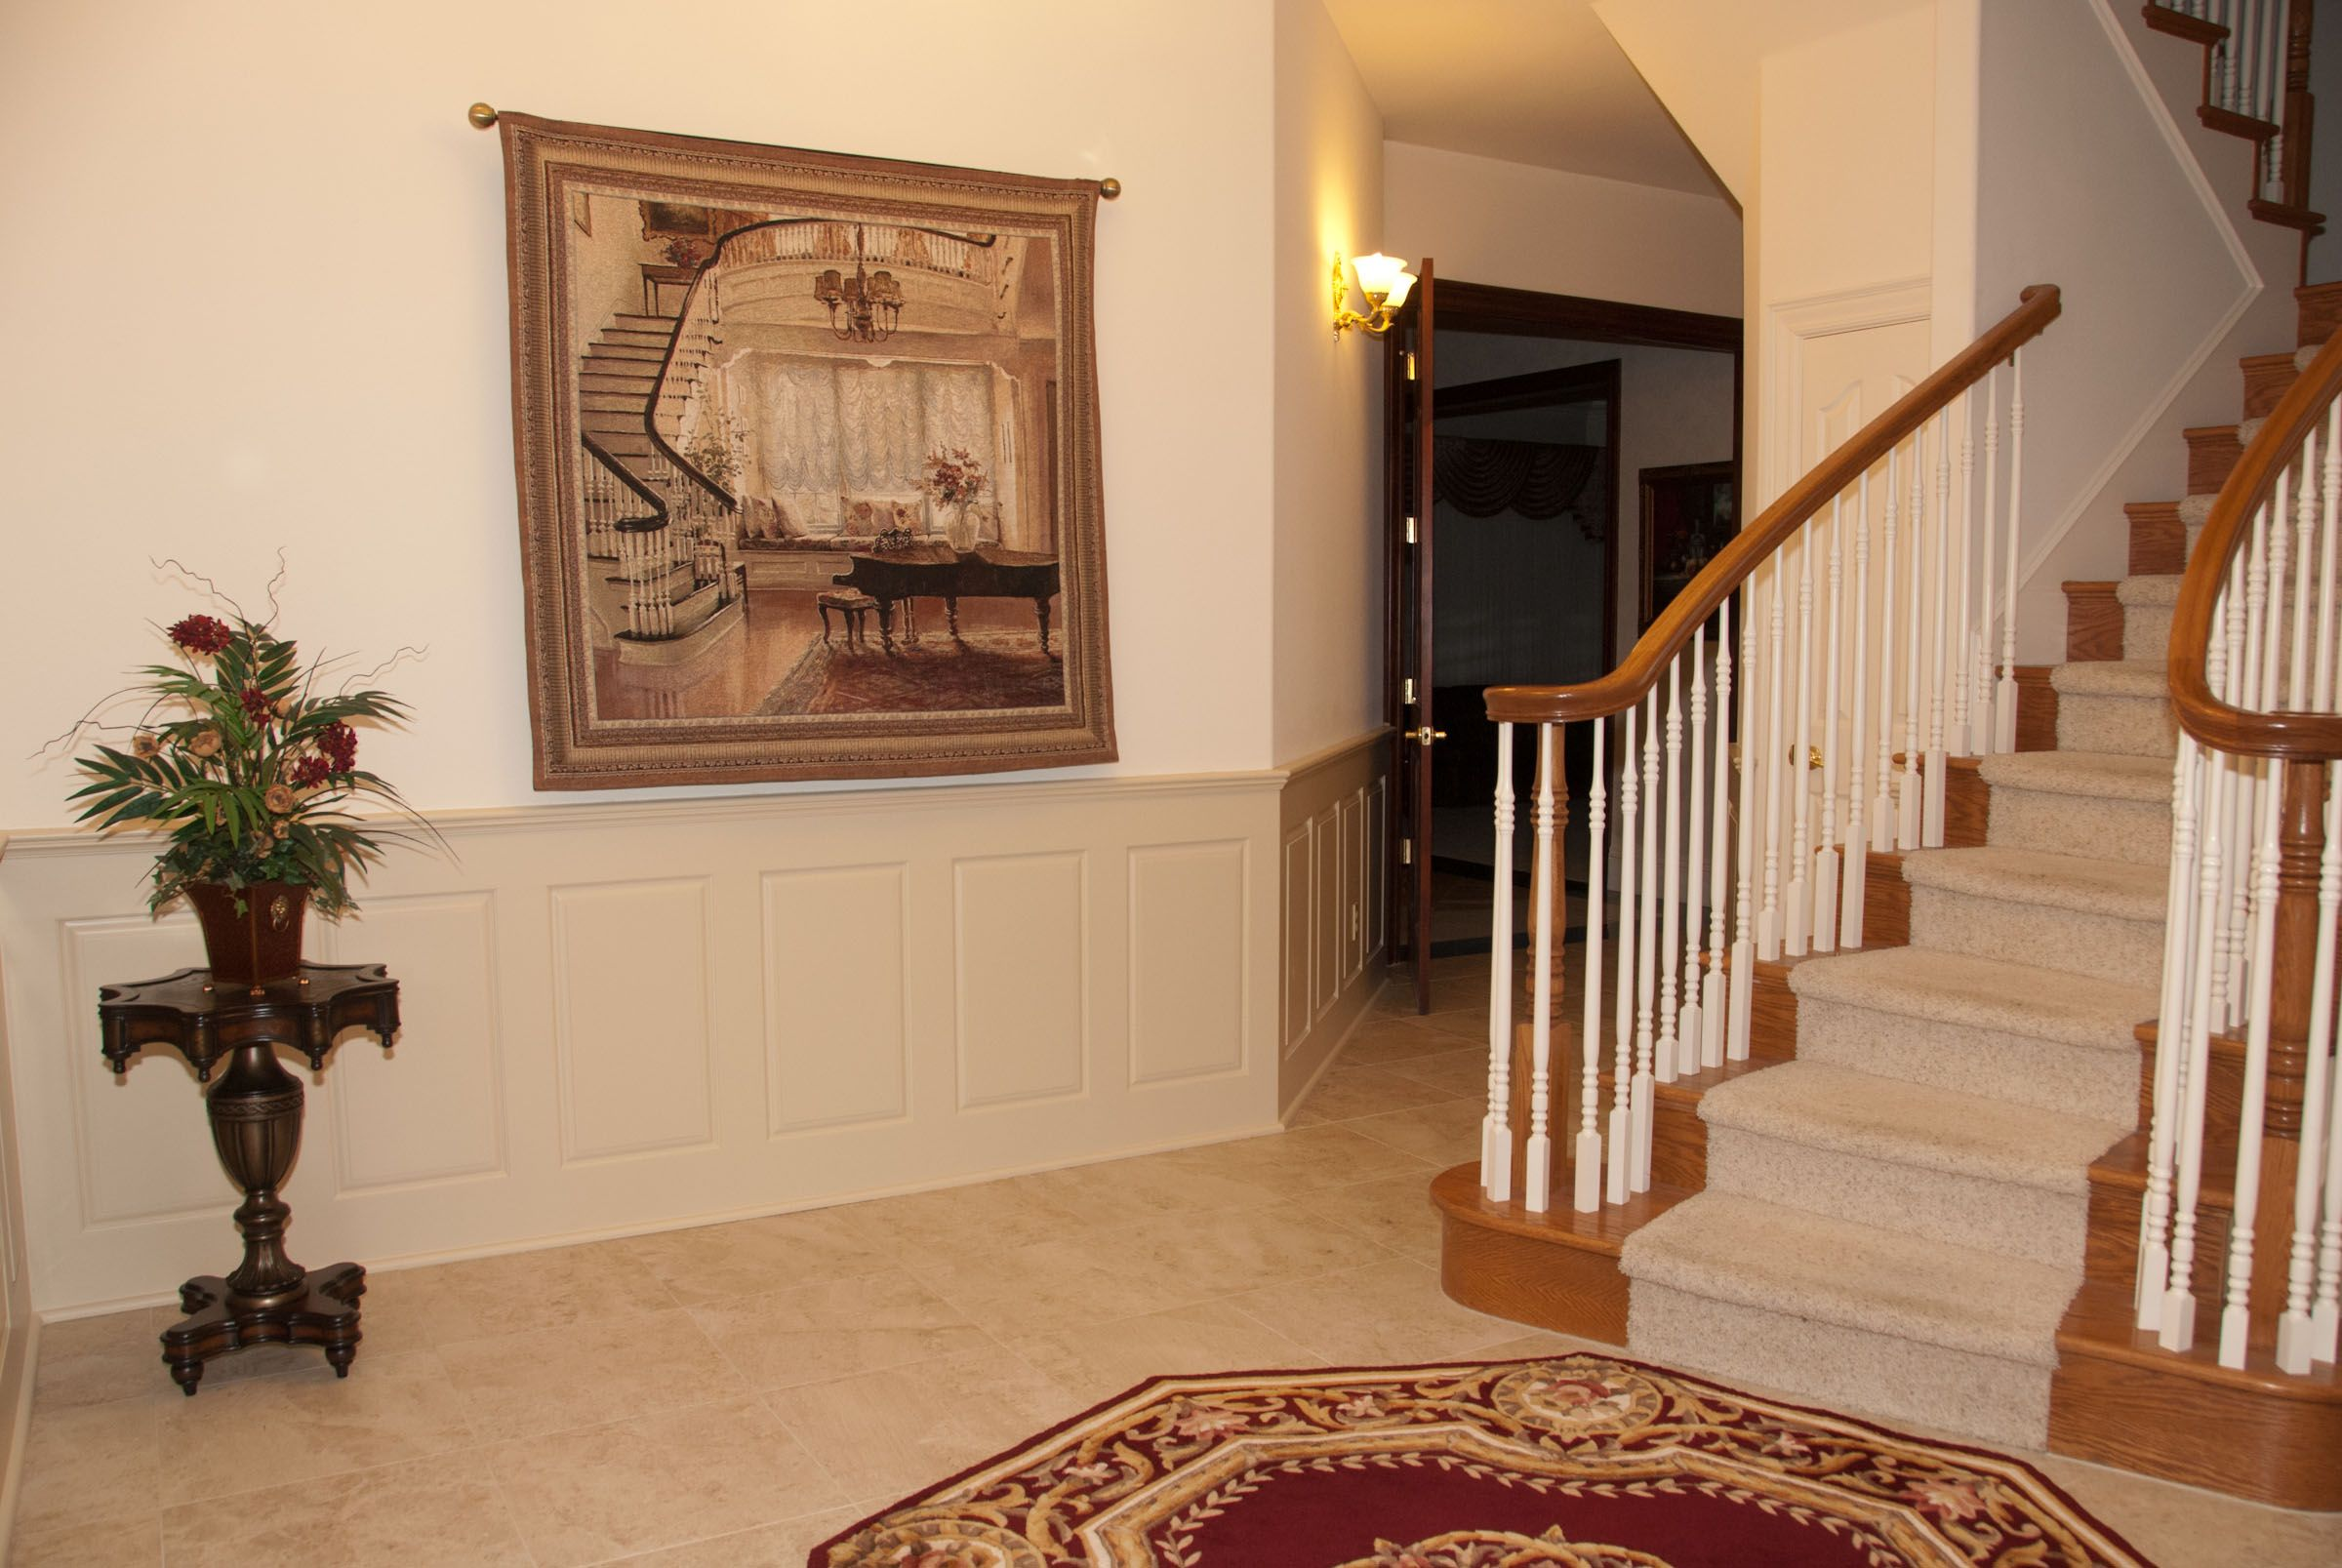 Installing #wood #paneling is a sure-fire way to heighten interest and increase marketability. #wainscoting